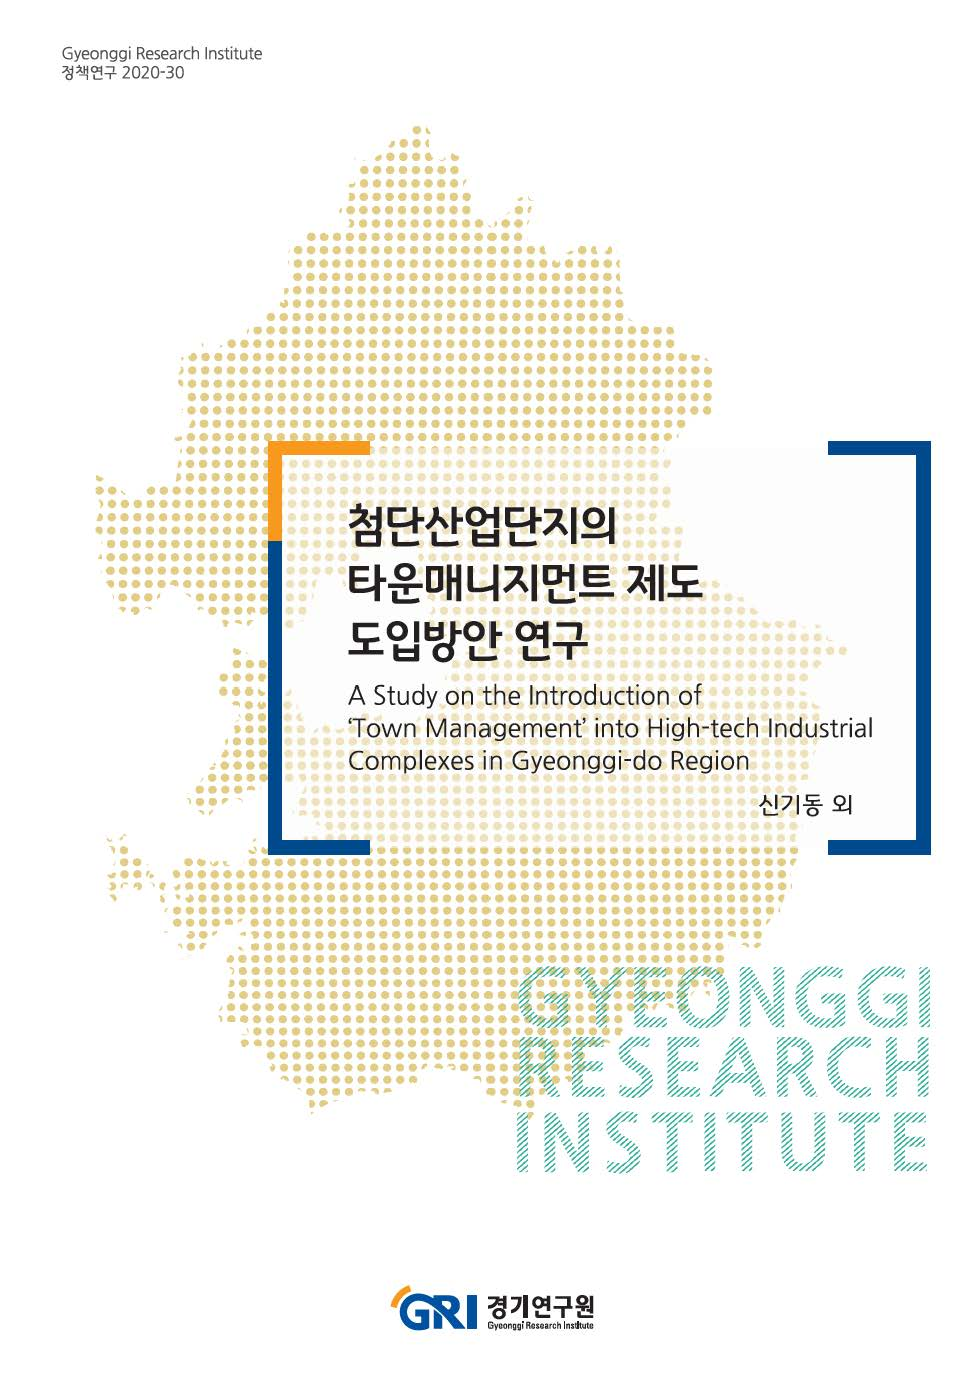 A Study on the Introduction of 'Town Management' into High-Tech Industrial Complexse in Gyeonggi-Do ...